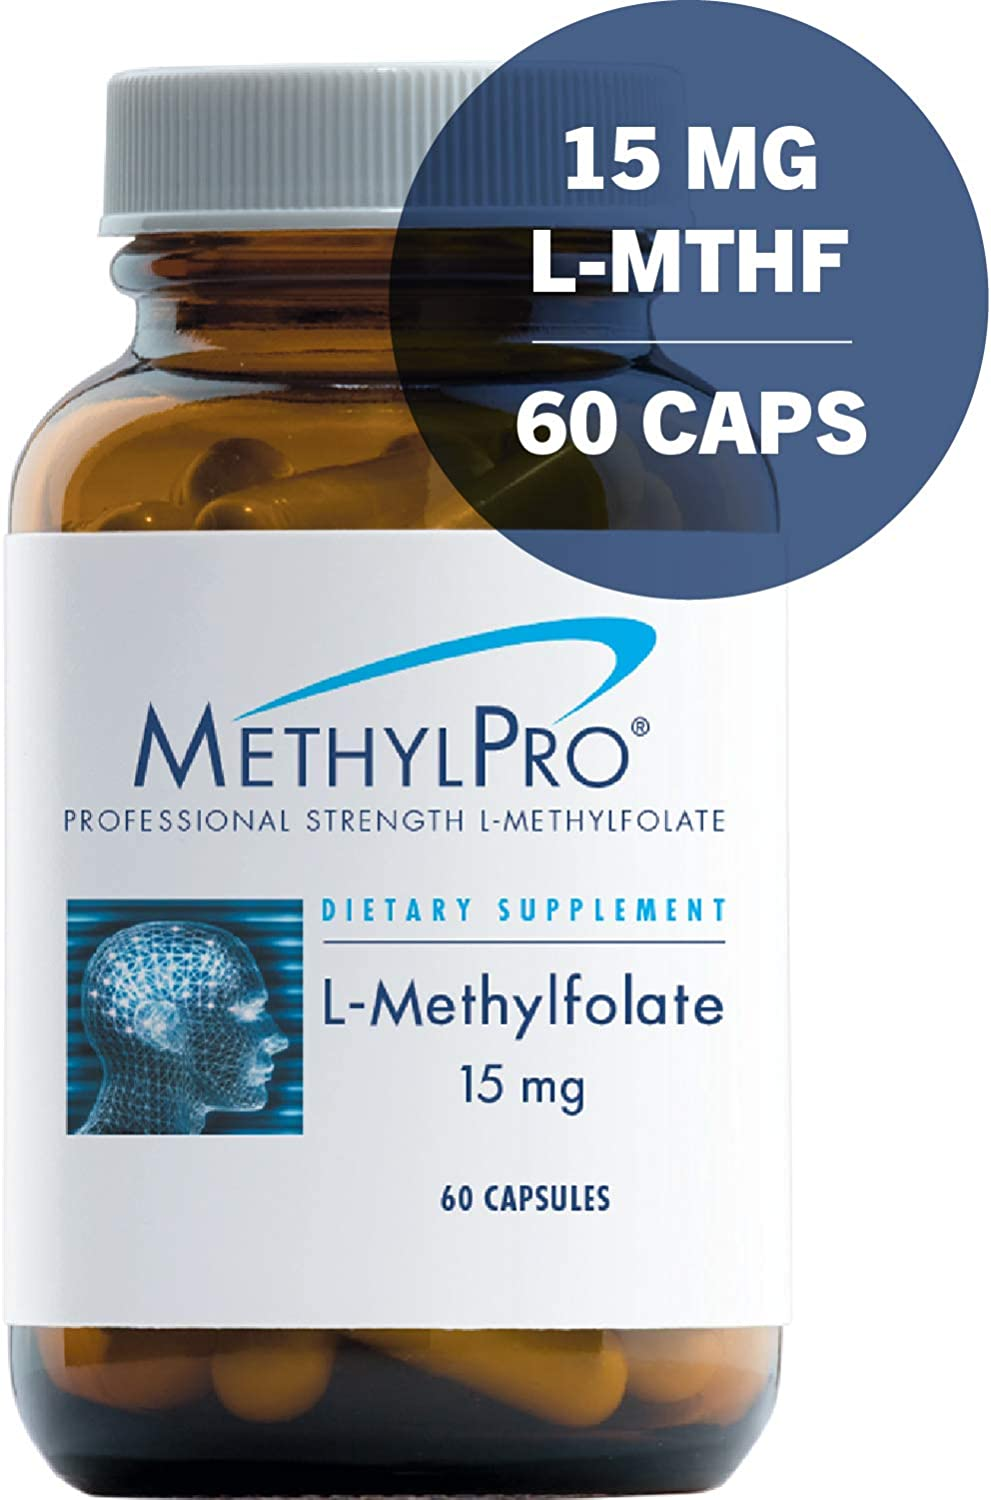 MethylPro L-Methylfolate 15mg 60 Capsules – No Fillers, Professional Strength 15000mcg Active Folate, 5-MTHF for Mood, Homocysteine Methylation Immune Support, Non-GMO Gluten-Free 60 Capsules